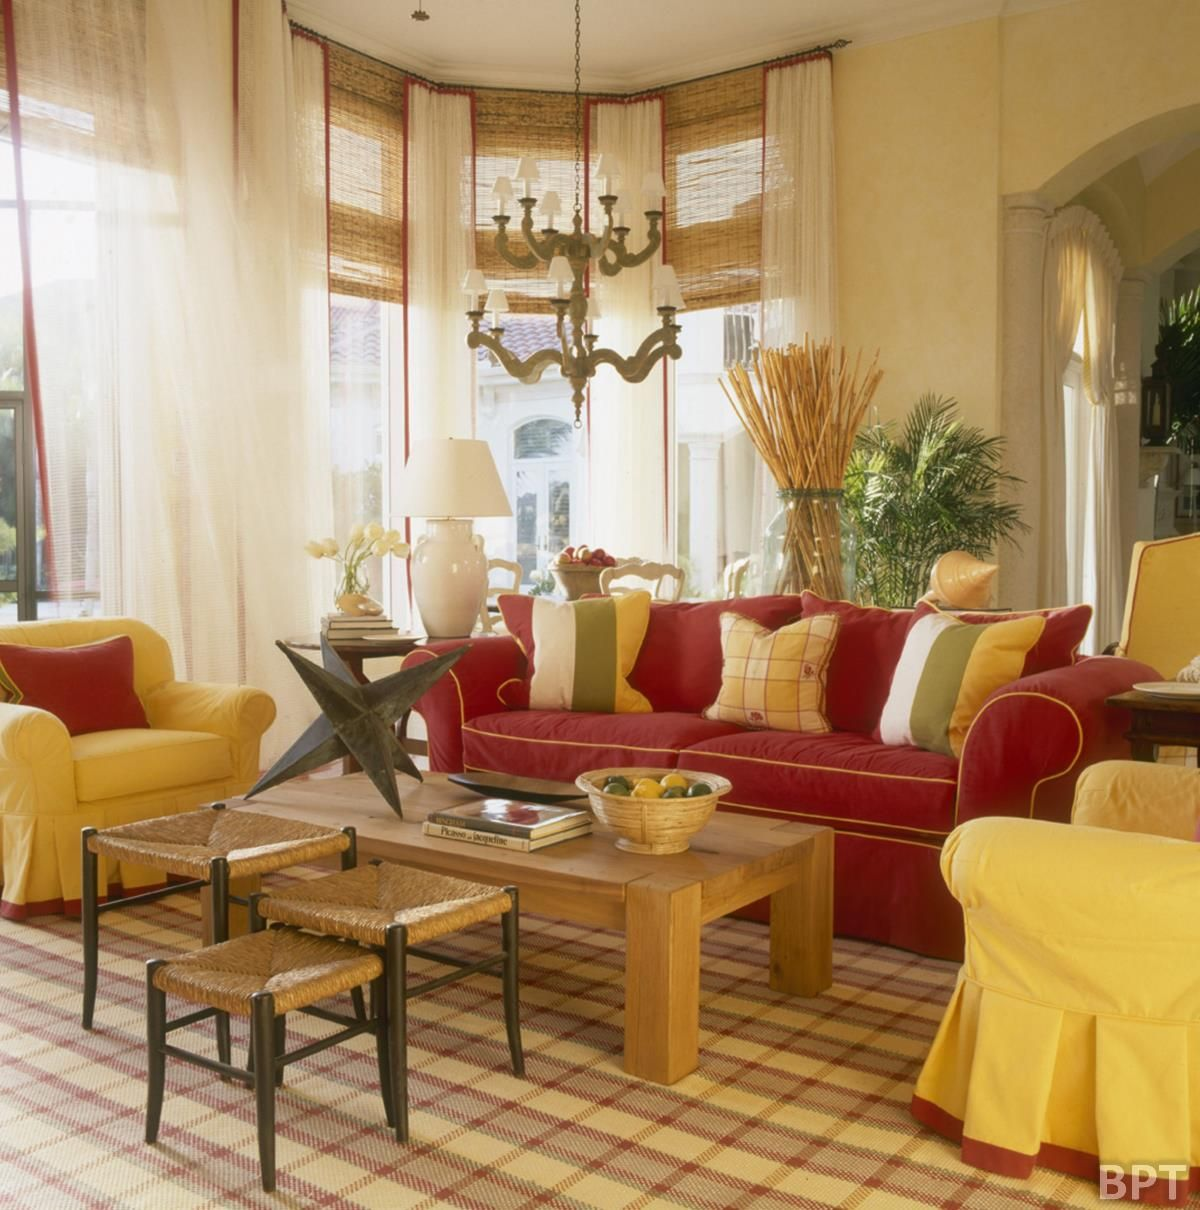 Home Design Ideas Colors: Classic Interior Living Room Design With Yellow And Red